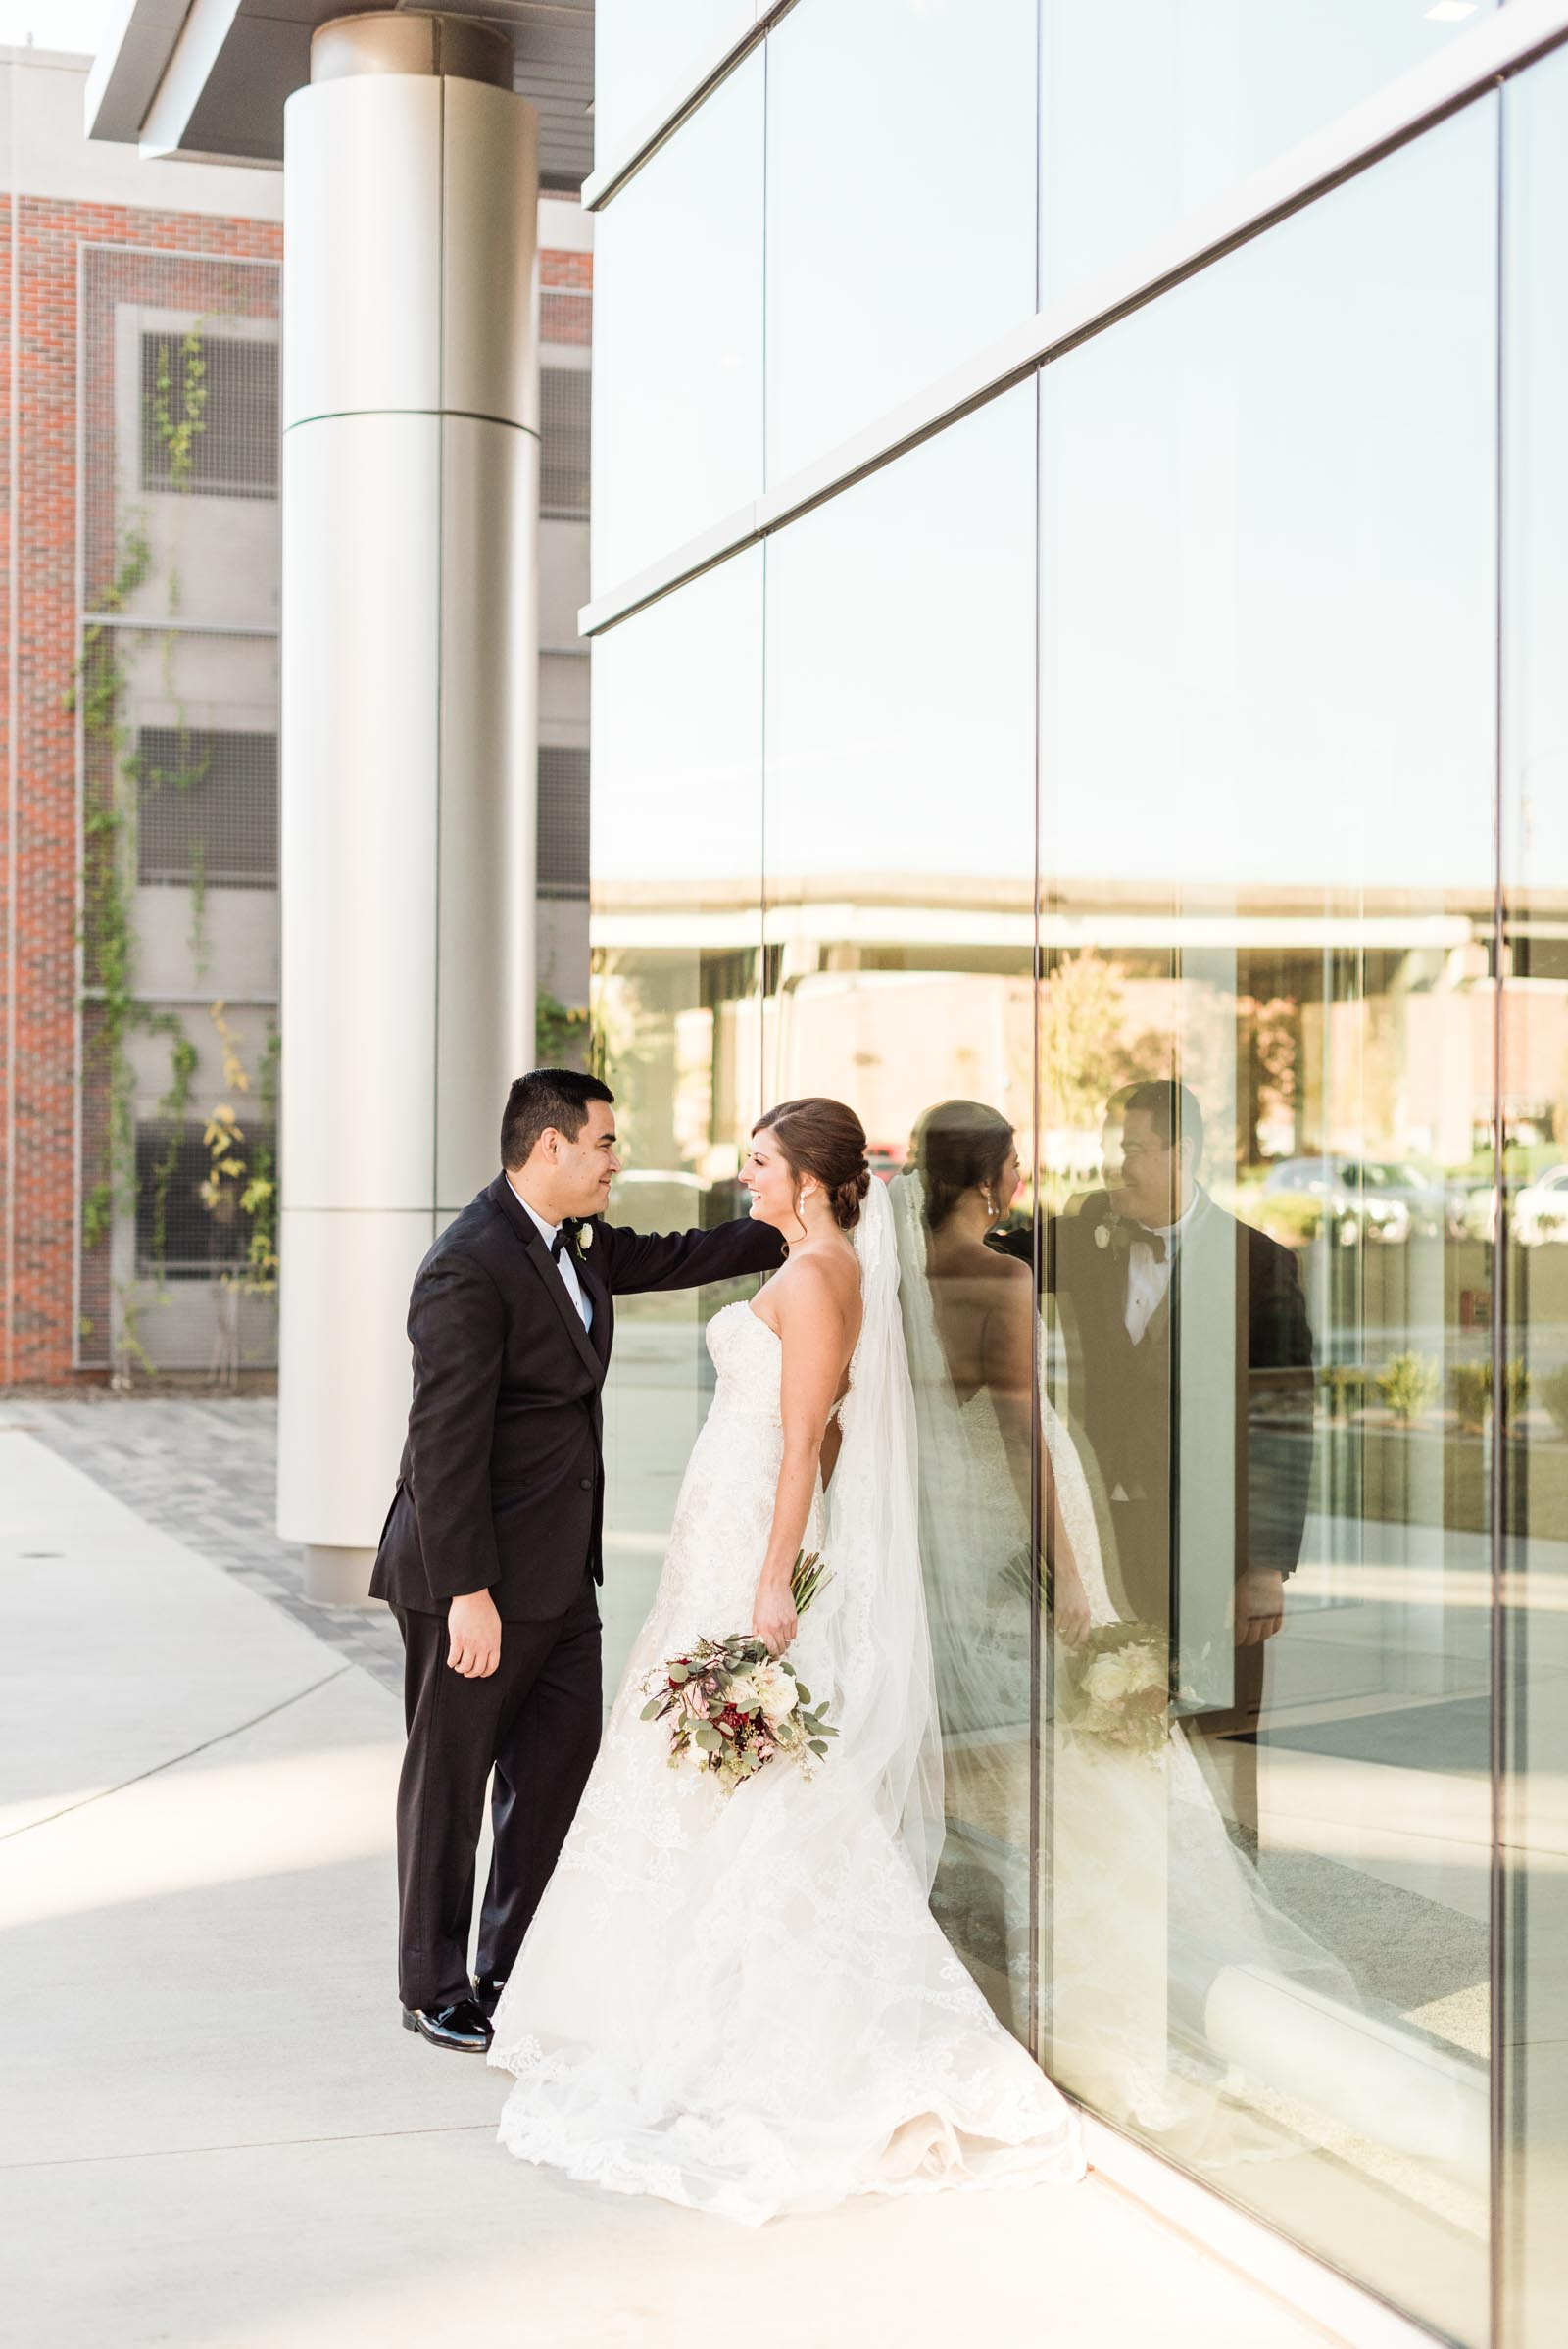 Wedding at Avenue in Greenville SC_Markie Walden Photo-40.jpg